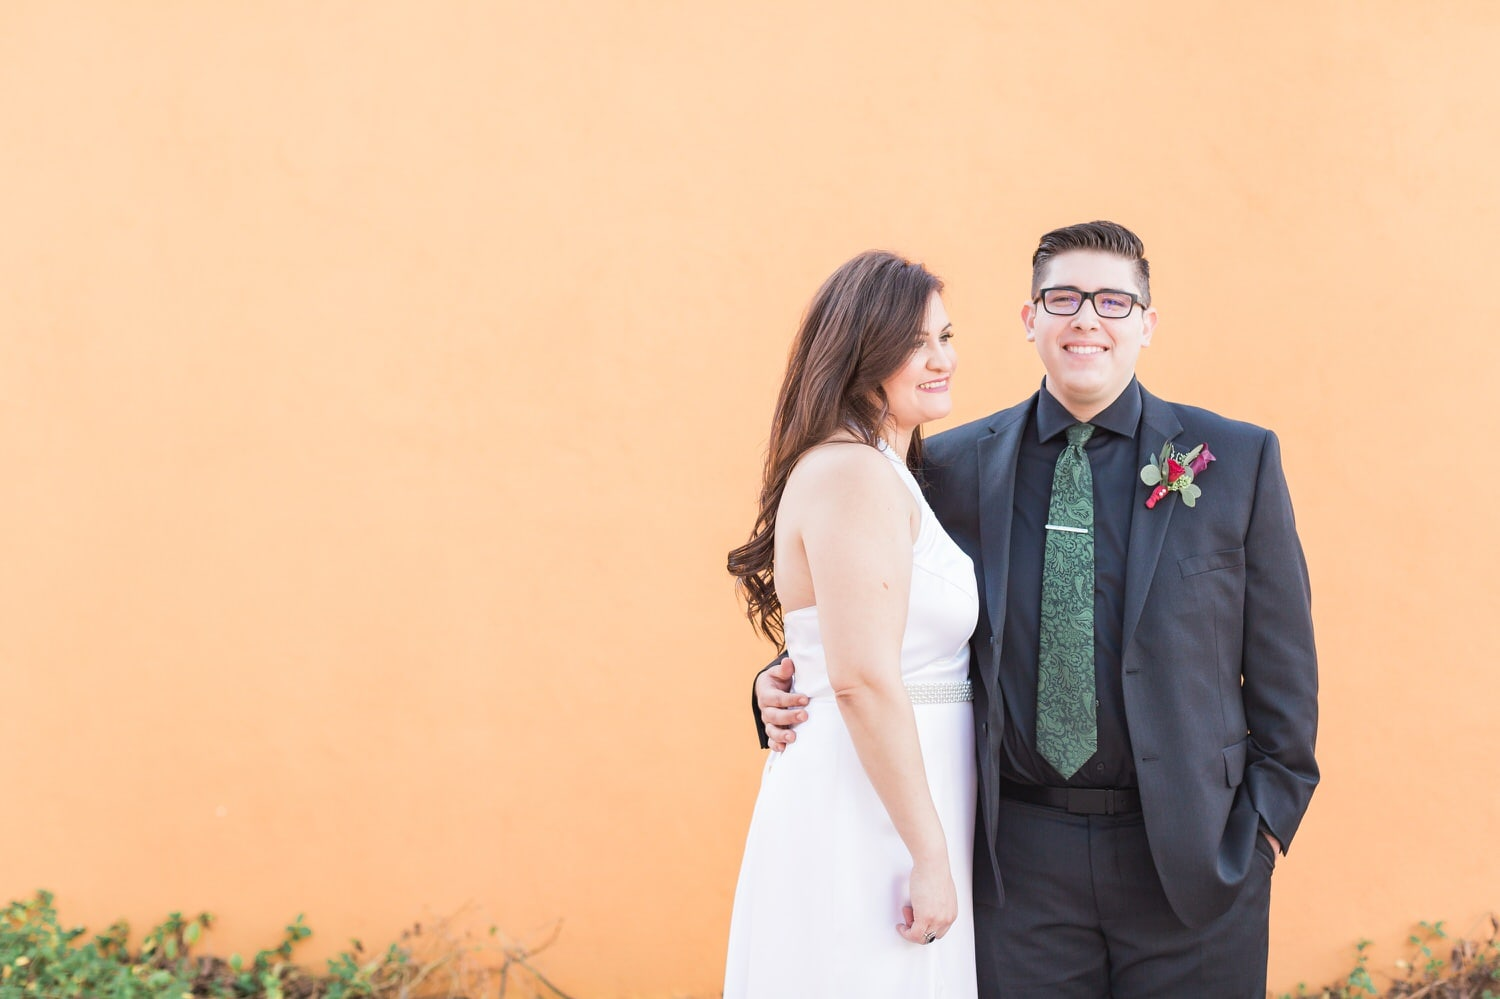 Saguaro Scottsdale Wedding